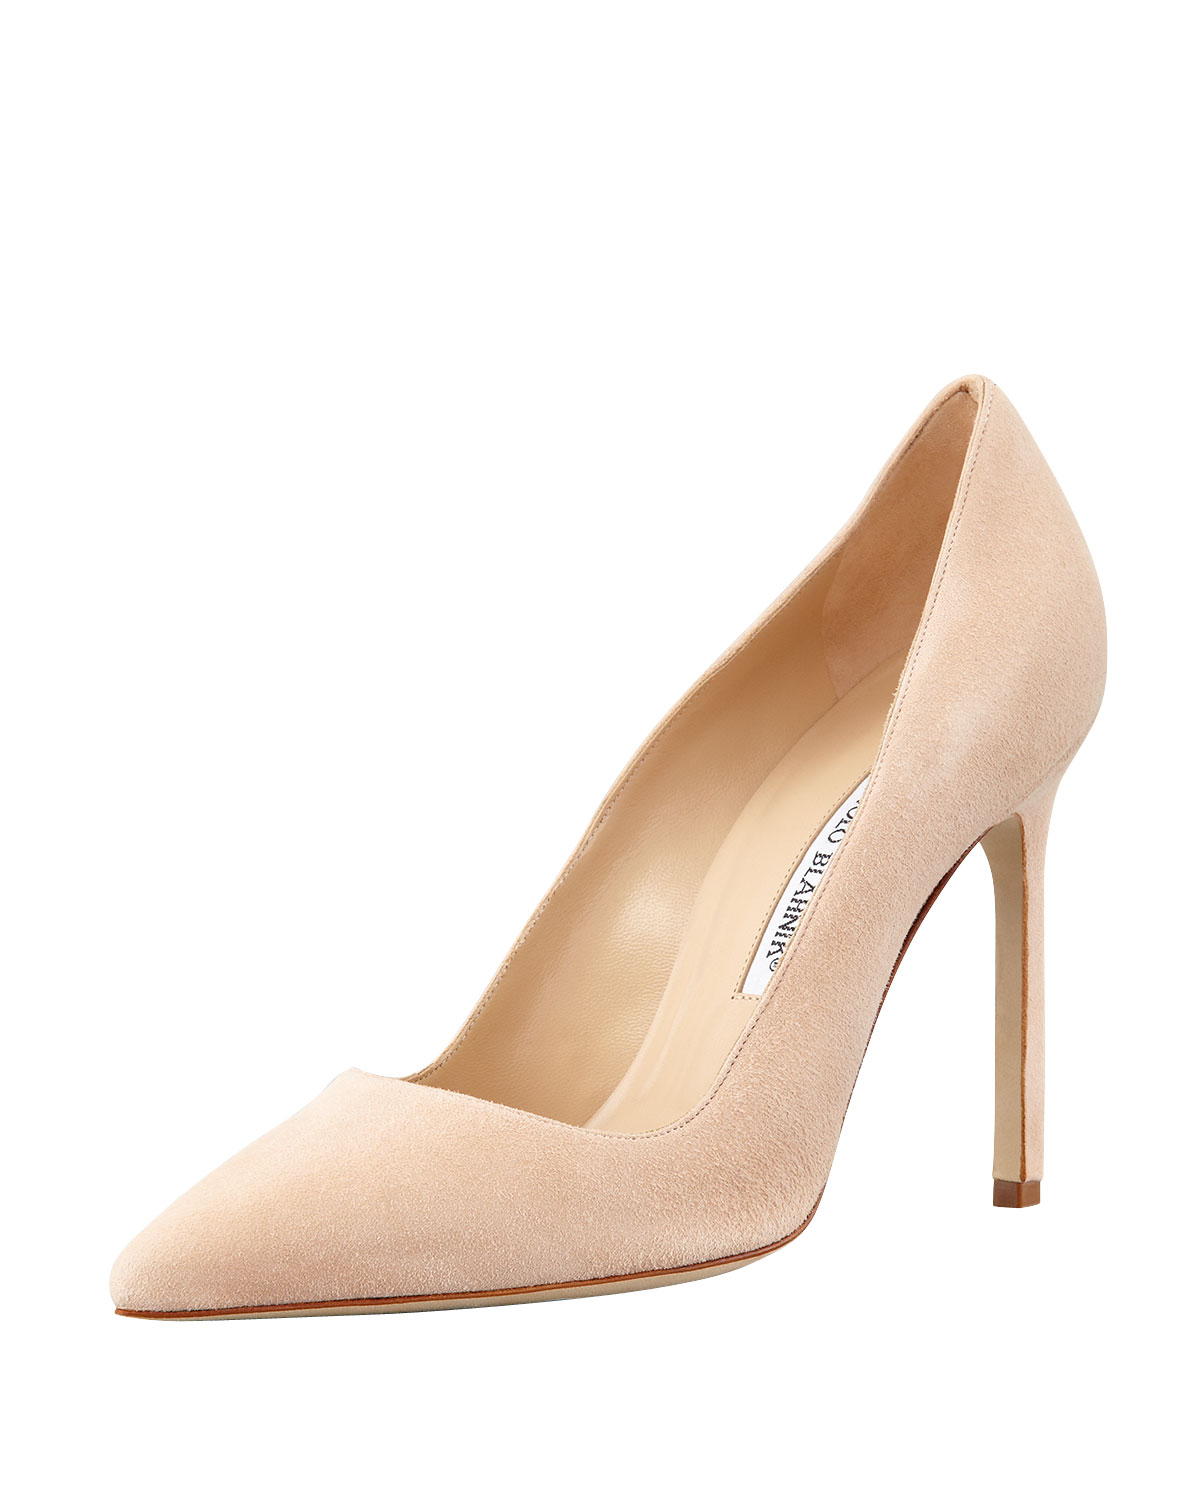 Manolo Blahnik Bb Suede 115Mm Pump In Beige Nude  Lyst-8119